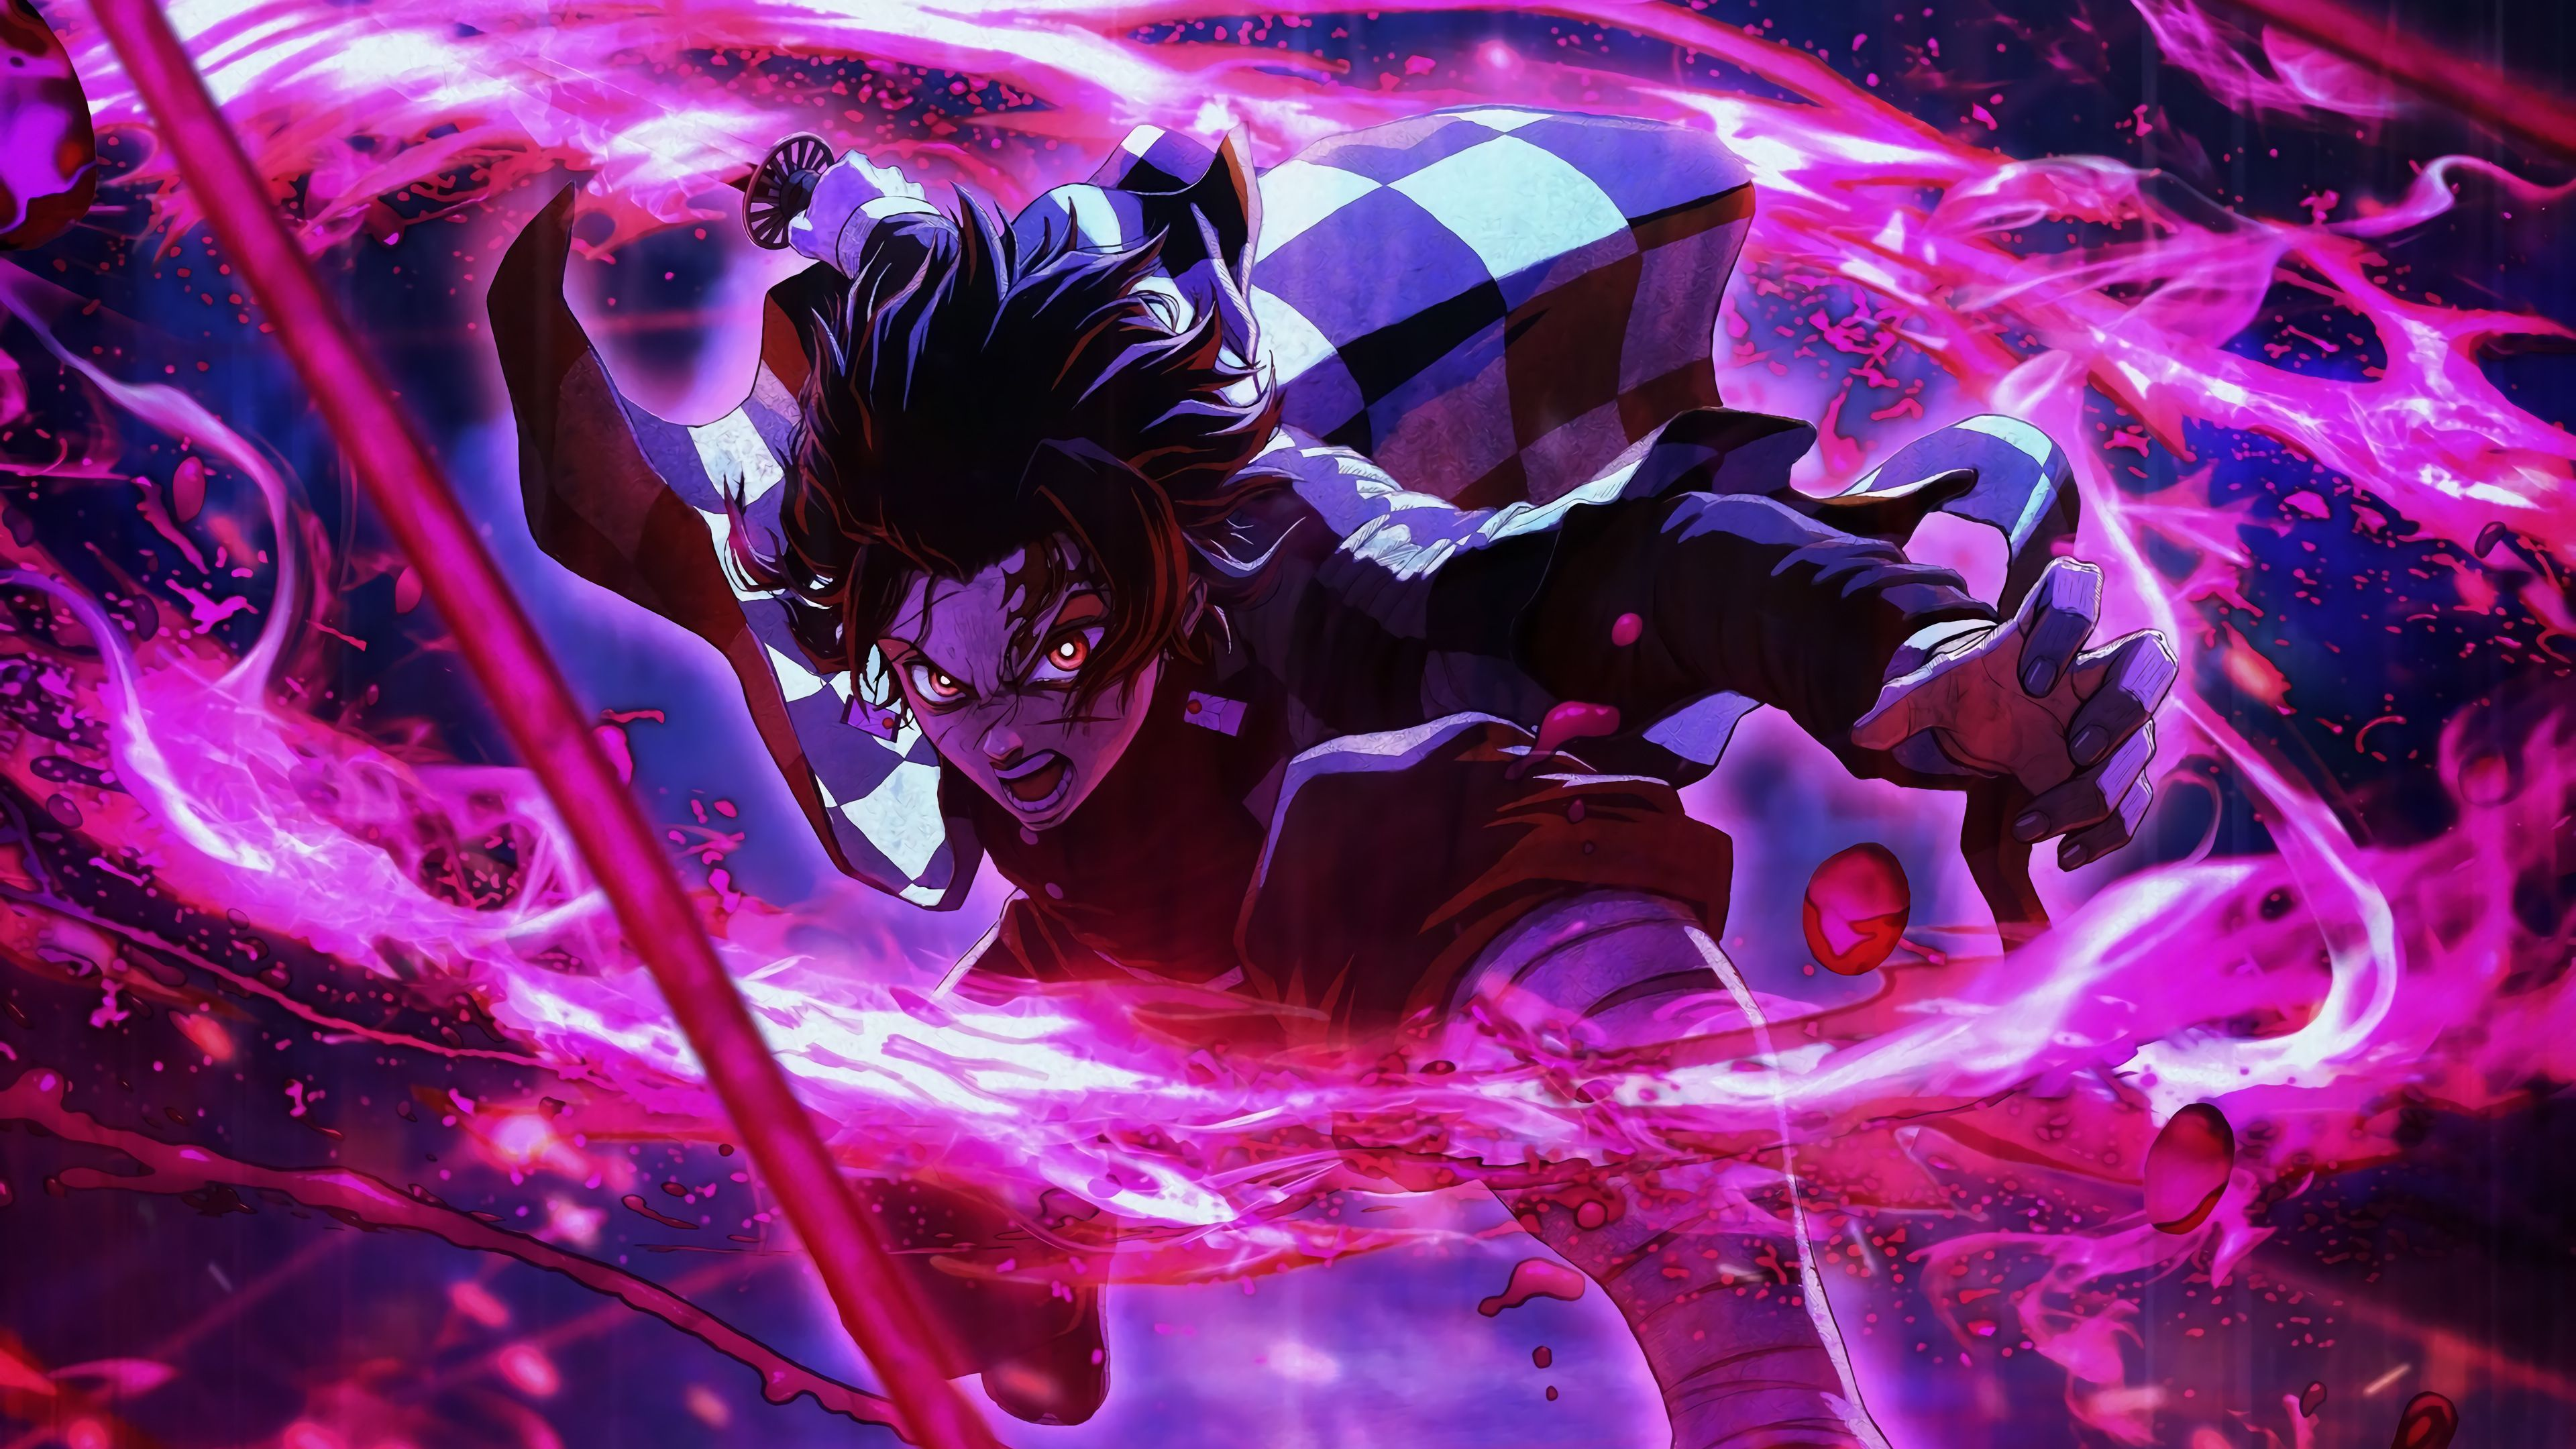 Tanjiro The Demonslayer In 2020 Hd Anime Wallpapers Anime Wallpaper Cool Anime Wallpapers